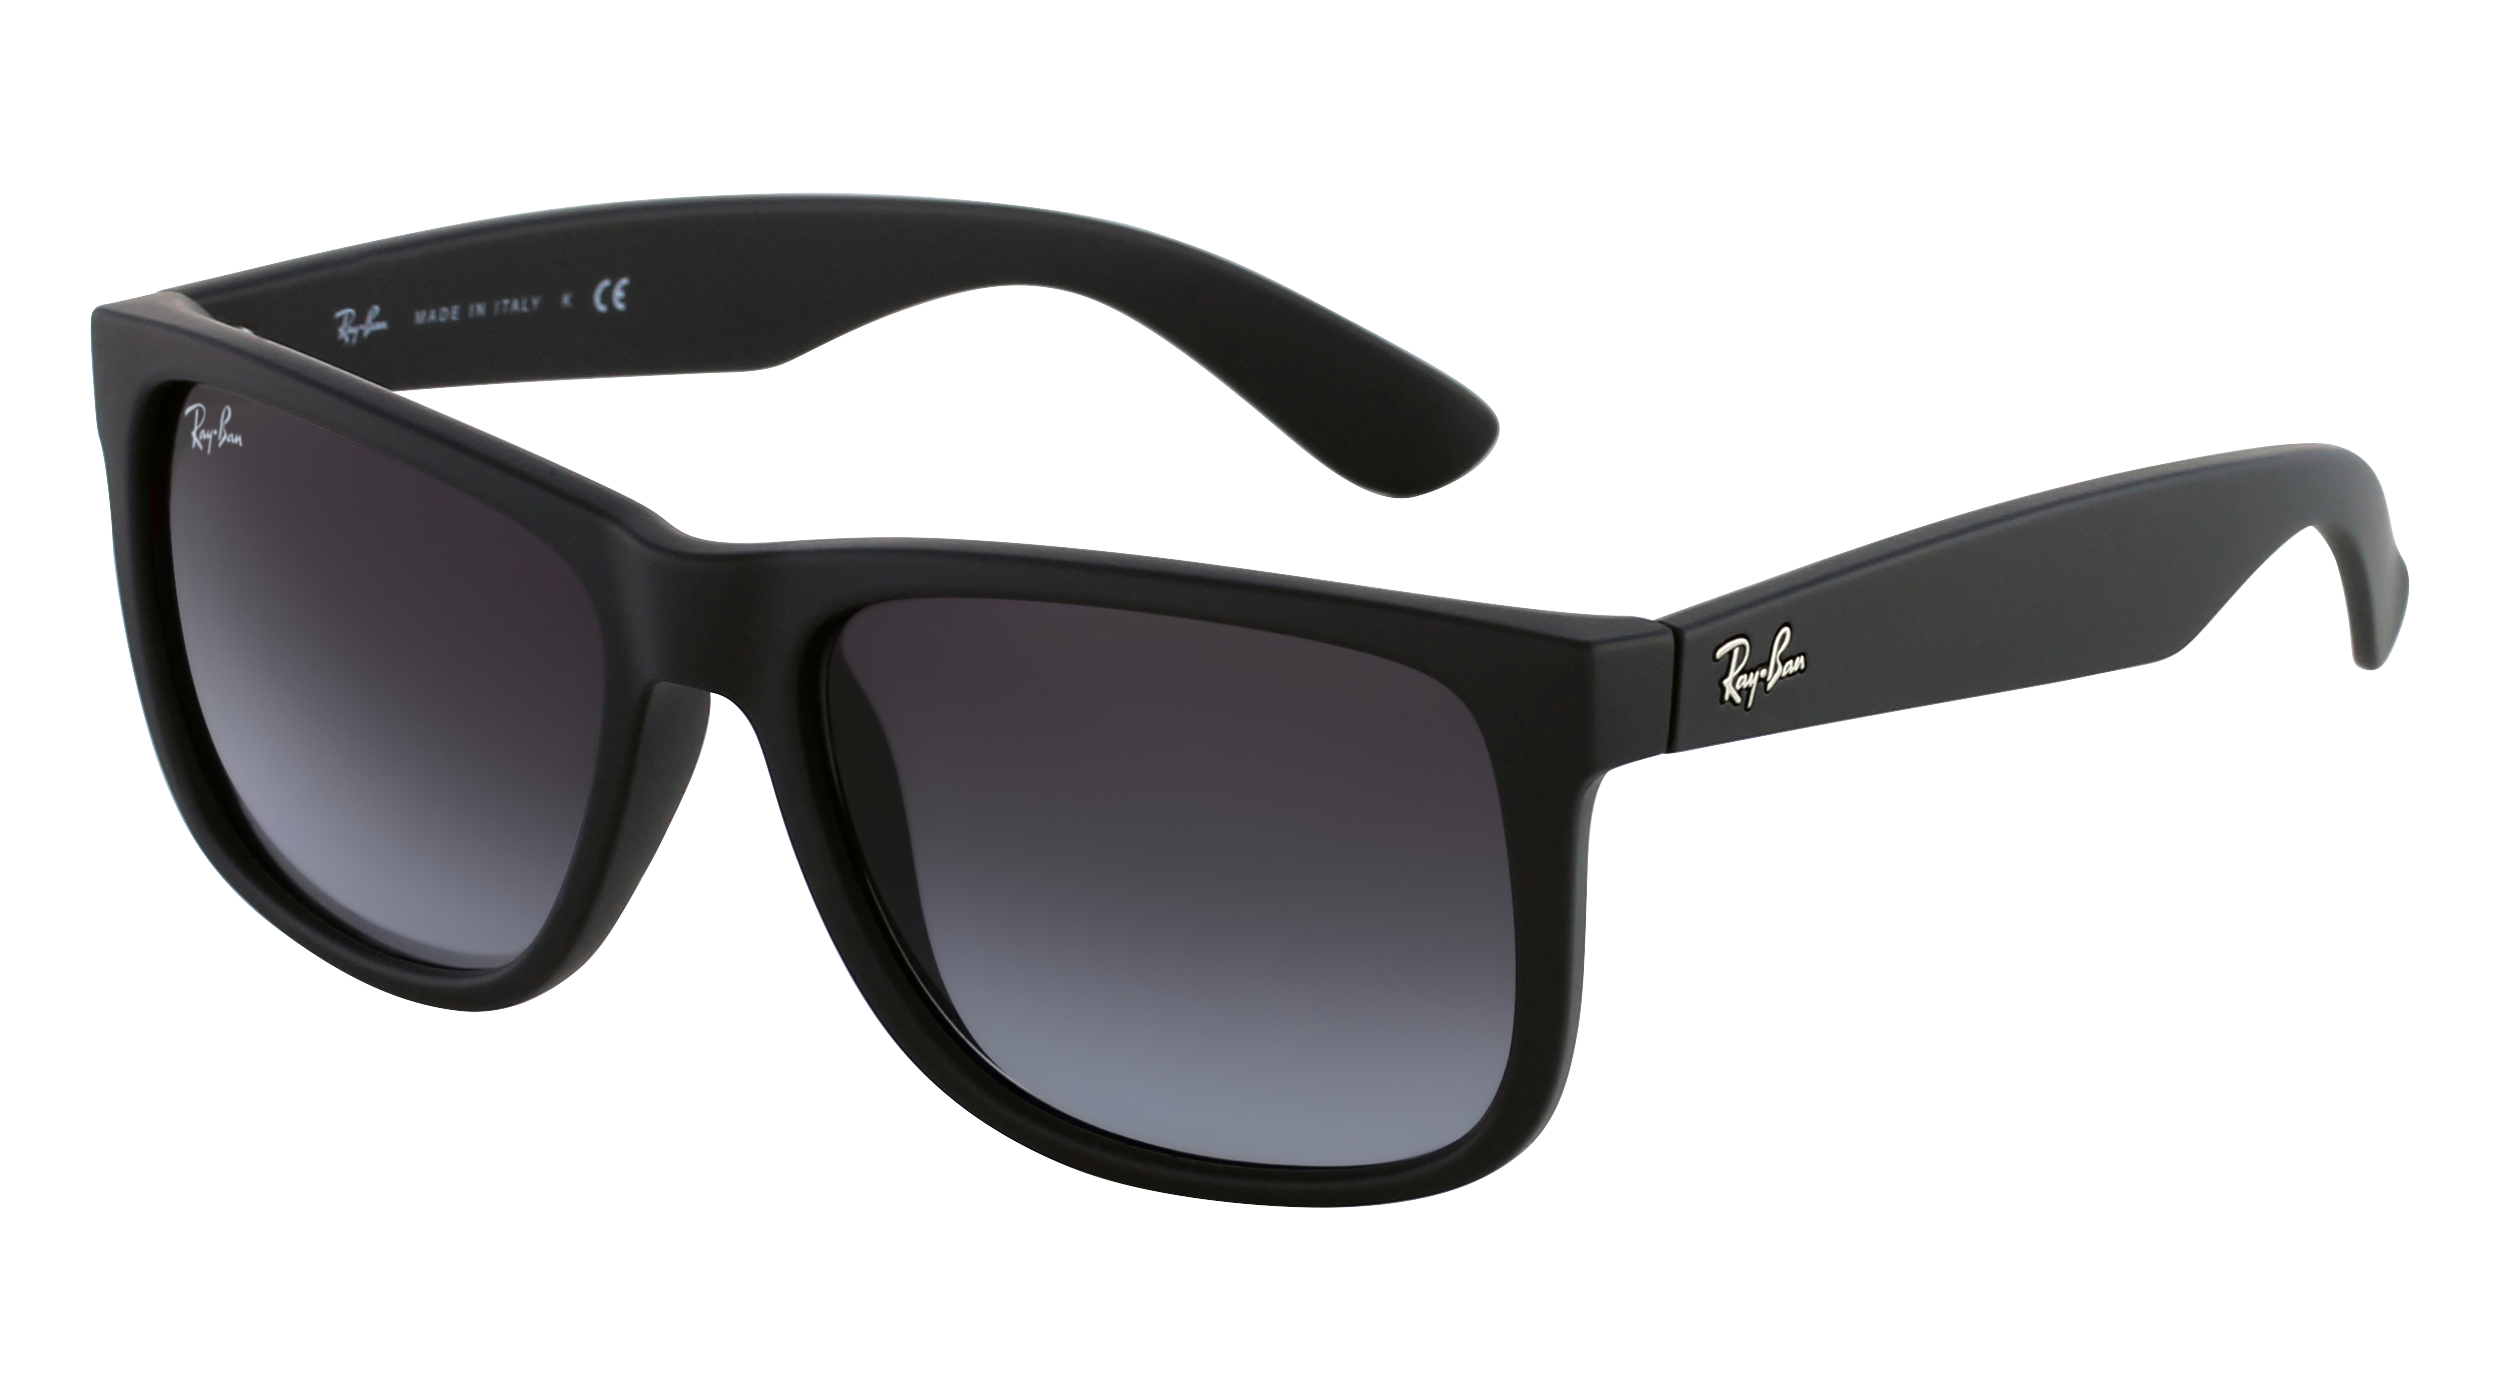 frame description. Ray-Ban RB A textured pattern of tiny dots like the edge of a coin runs along the front and temples of these retro inspired round sunglasses.